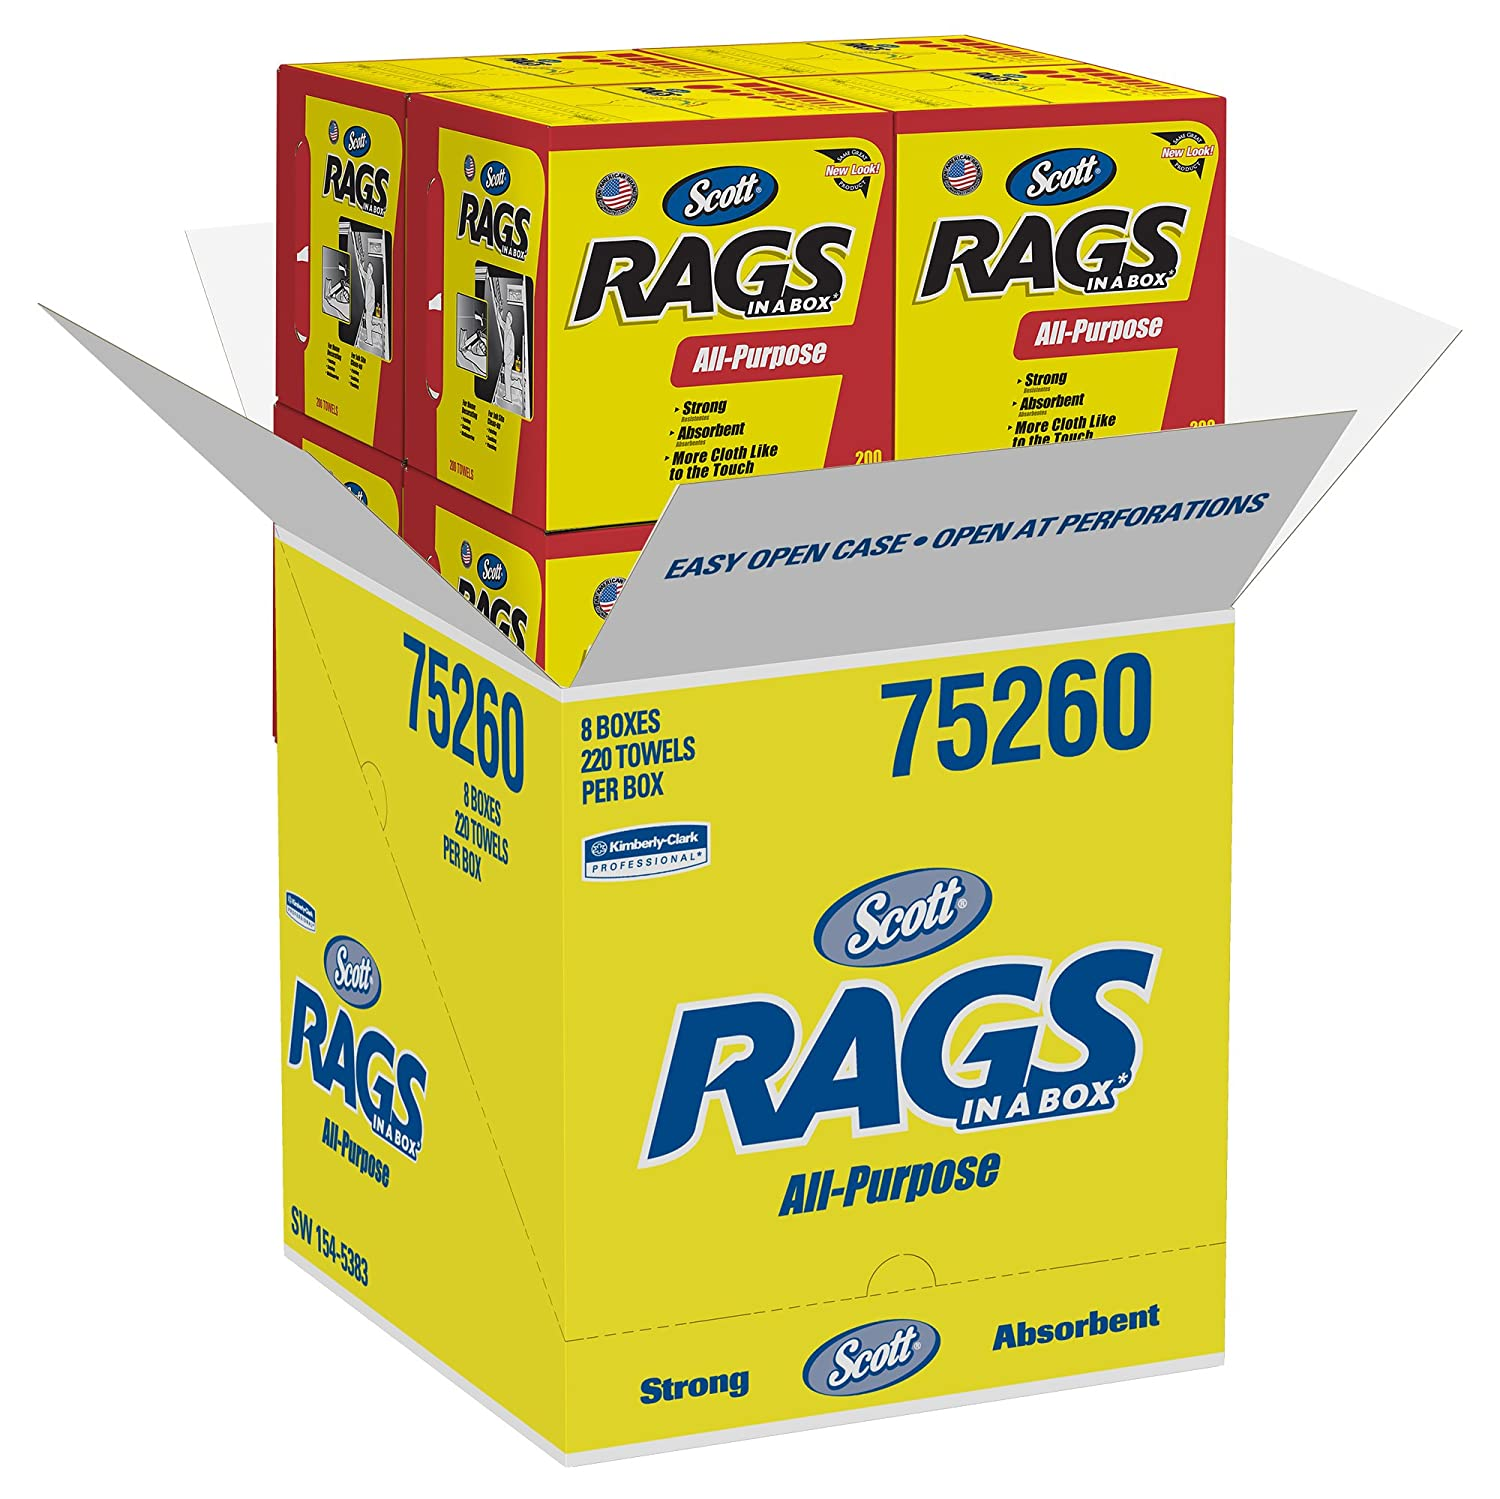 scott rags in a box 75260 white 200 shop towelsbox 8 boxescase paper towels amazoncom industrial scientific - Box Of Rags